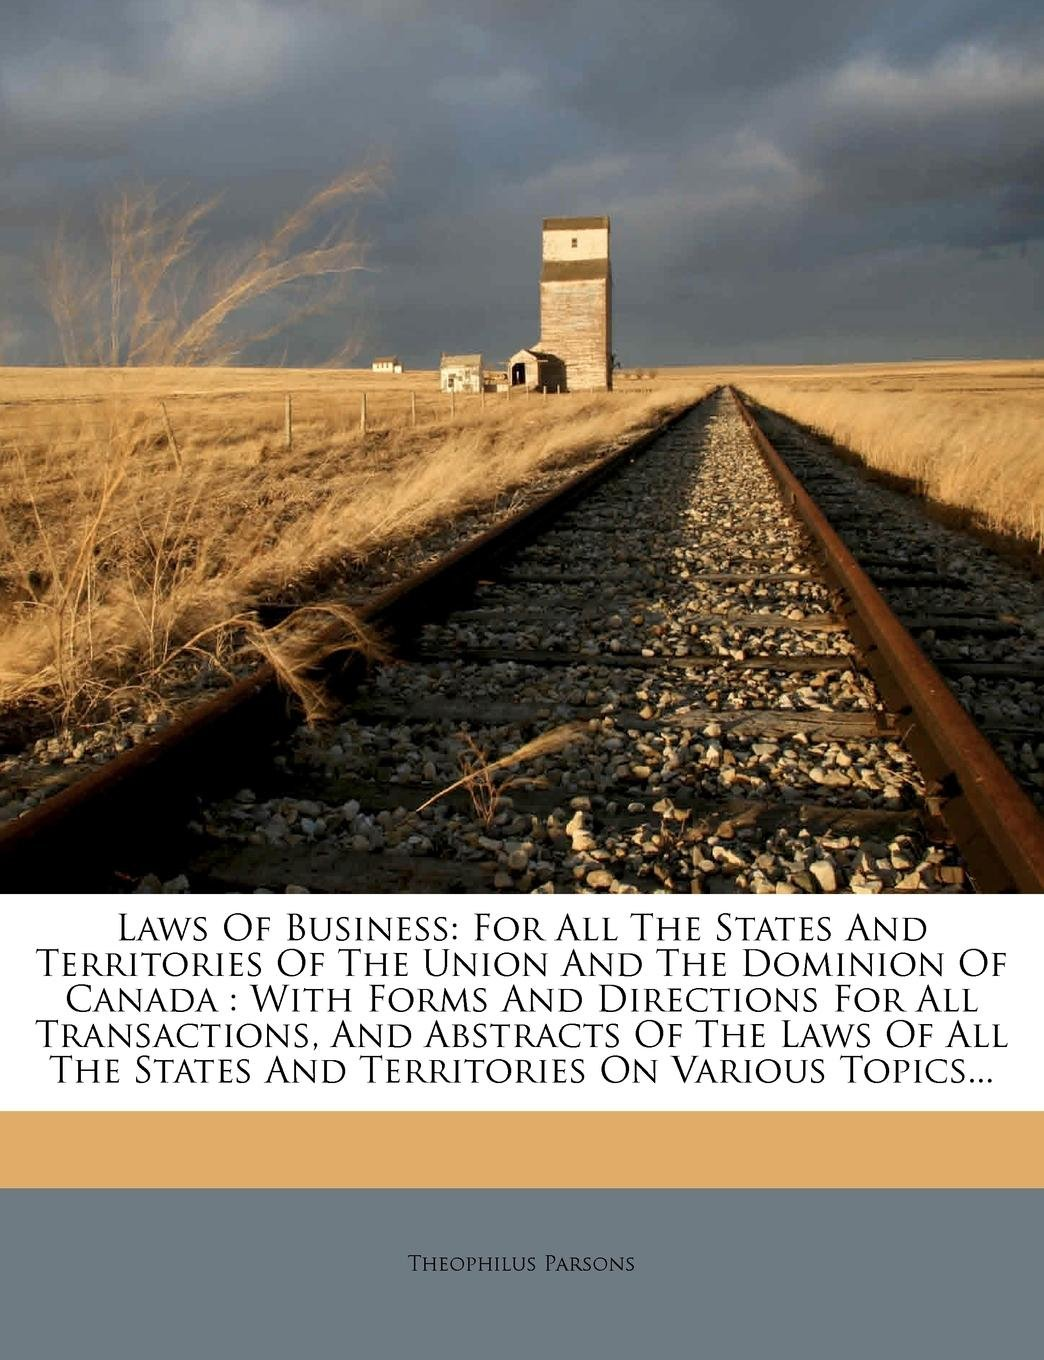 Laws Of Business: For All The States And Territories Of The Union And The Dominion Of Canada : With Forms And Directions For All Transactions, And ... States And Territories On Various Topics... pdf epub